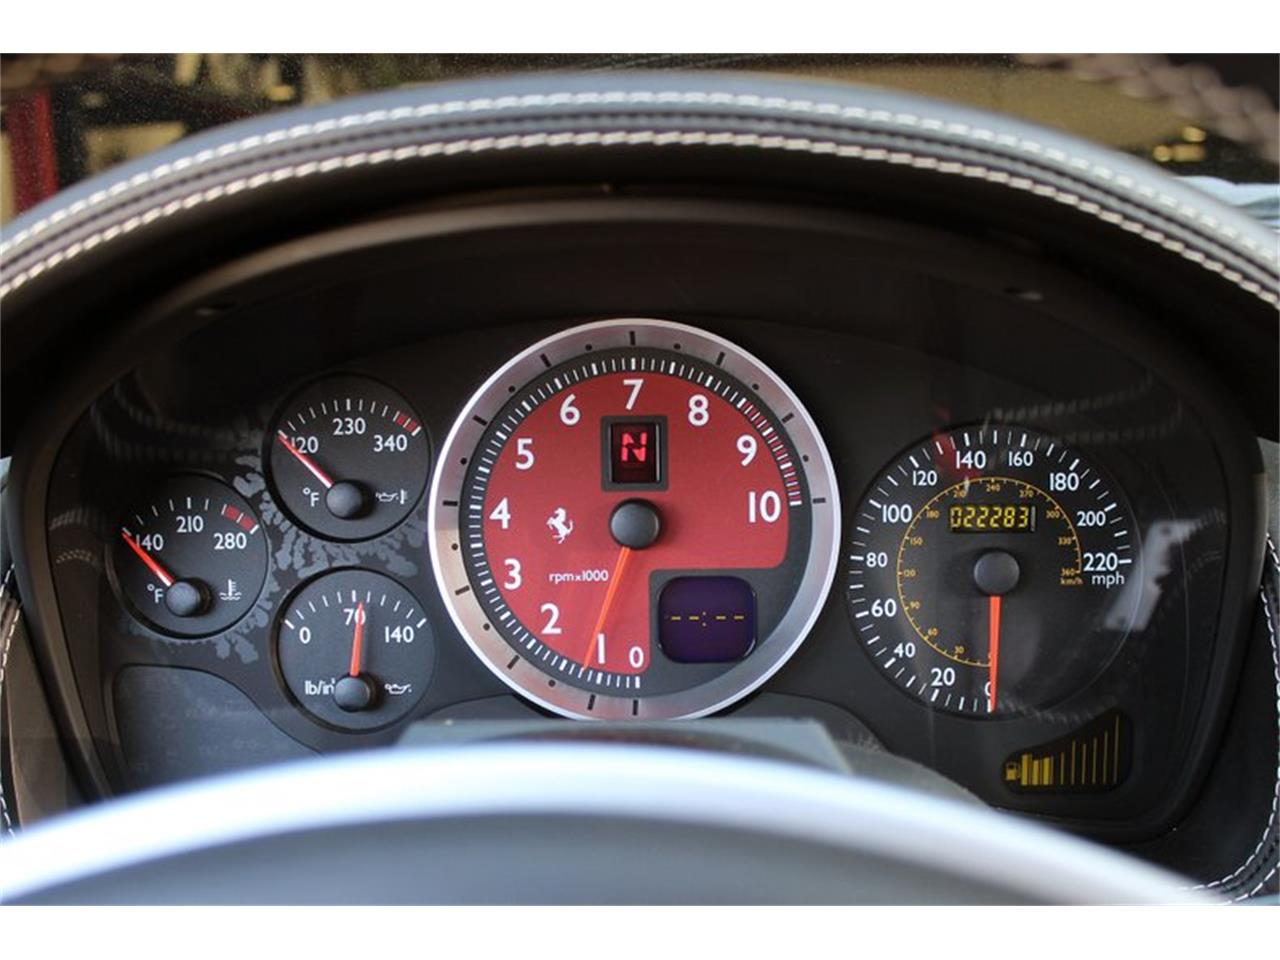 2005 Ferrari F430 for sale in San Carlos, CA – photo 32